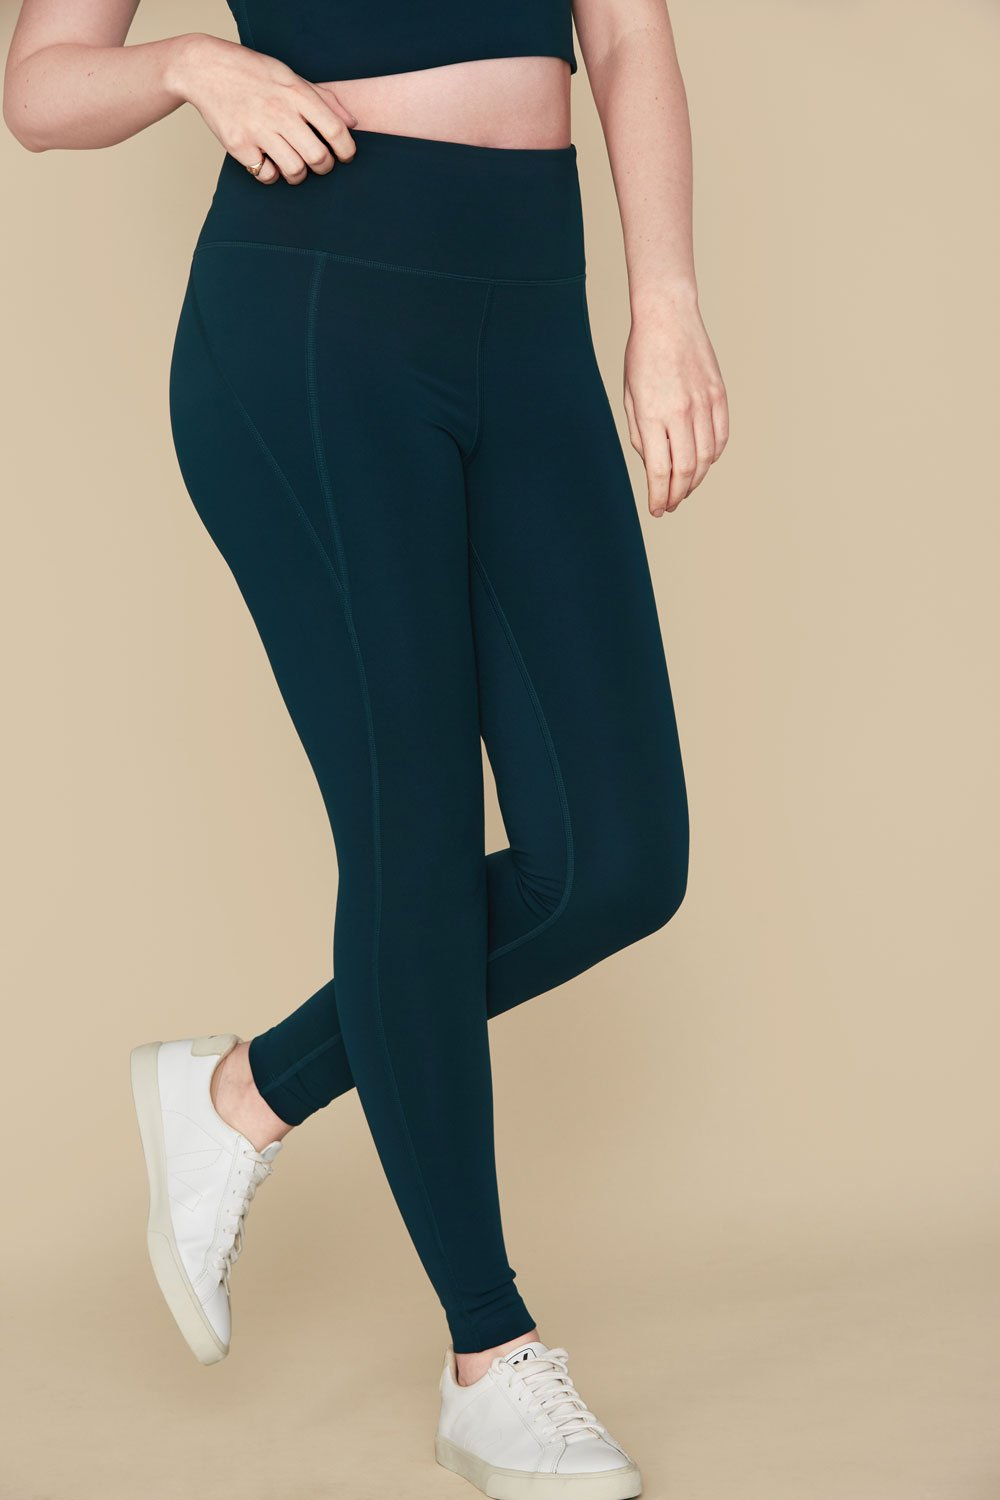 Girlfriend Collective Compression Leggings